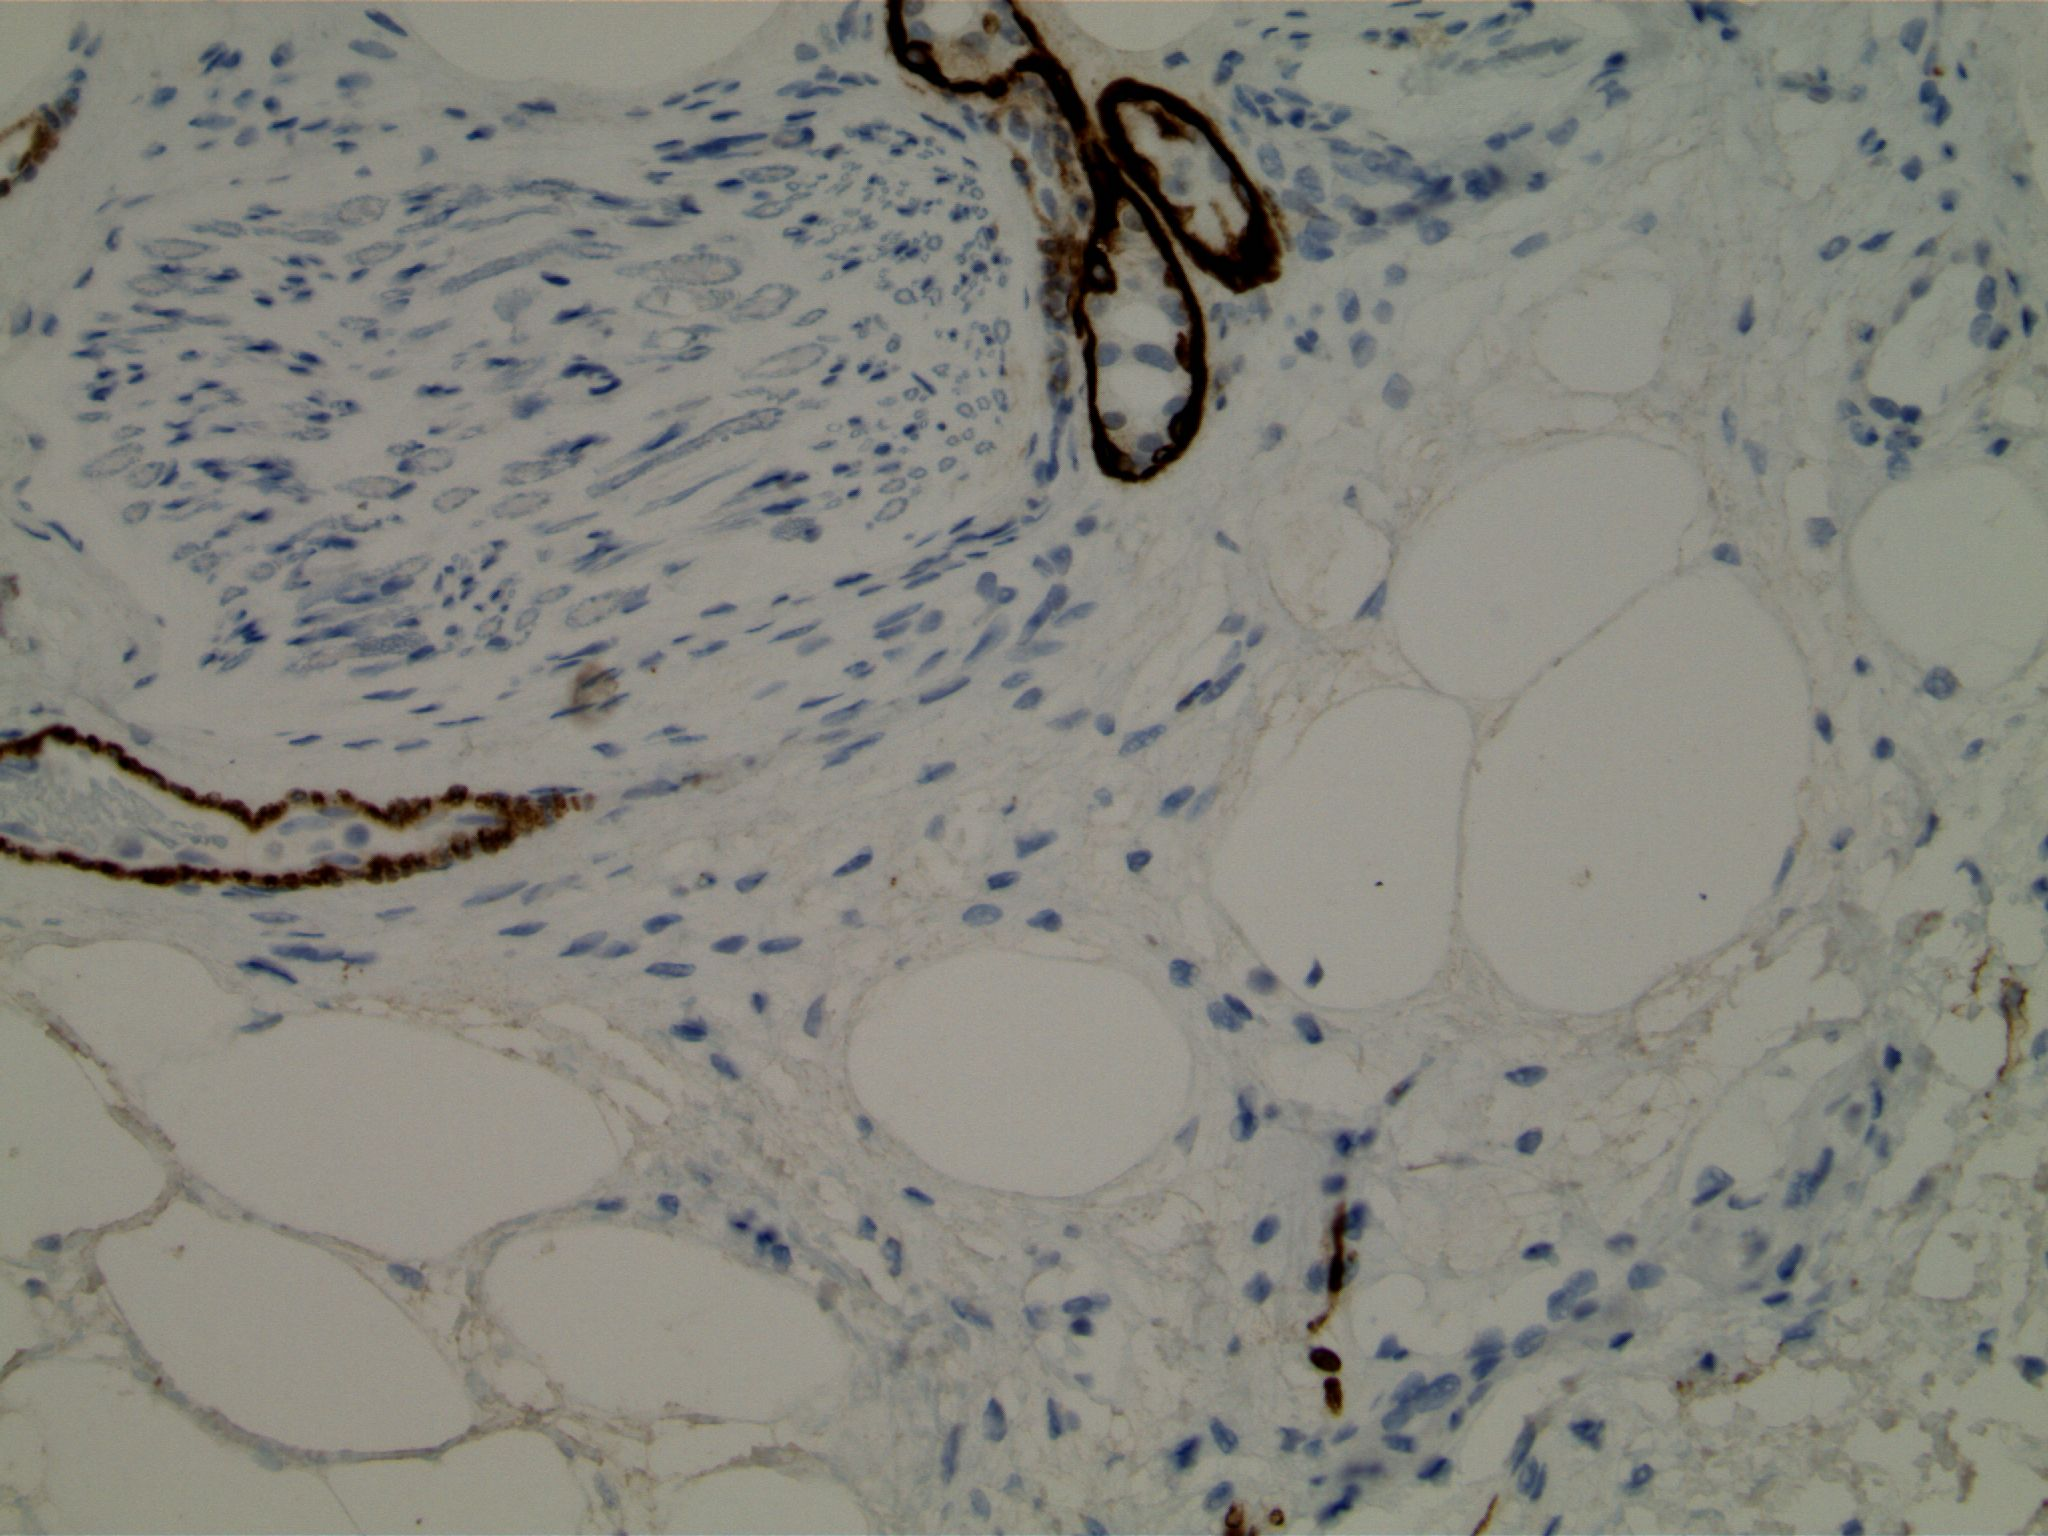 Image 5. Immunohistochemistry using antibodies to smooth muscle myosin heavy chain, demonstrating basement membrane material in normal acini and in perineurial glands.